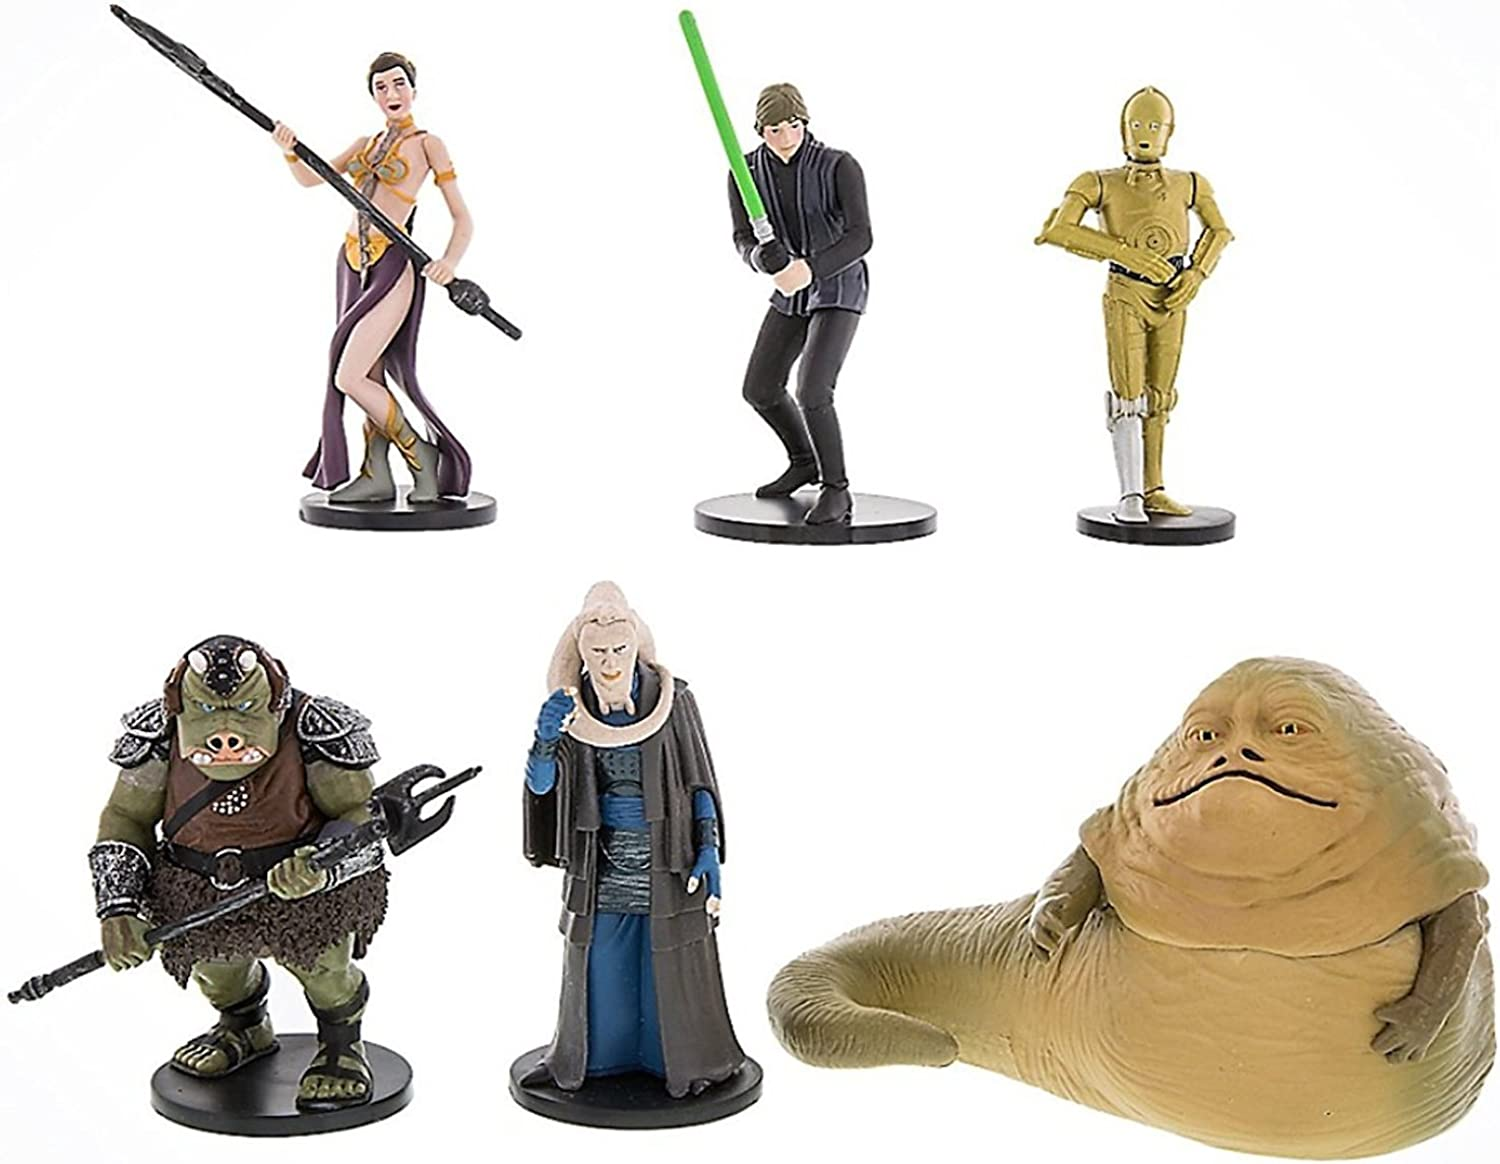 autorización oficial Estrella WARS Return of the Jedi Jedi Jedi - Acción Figura Jugarset by Disney  80% de descuento